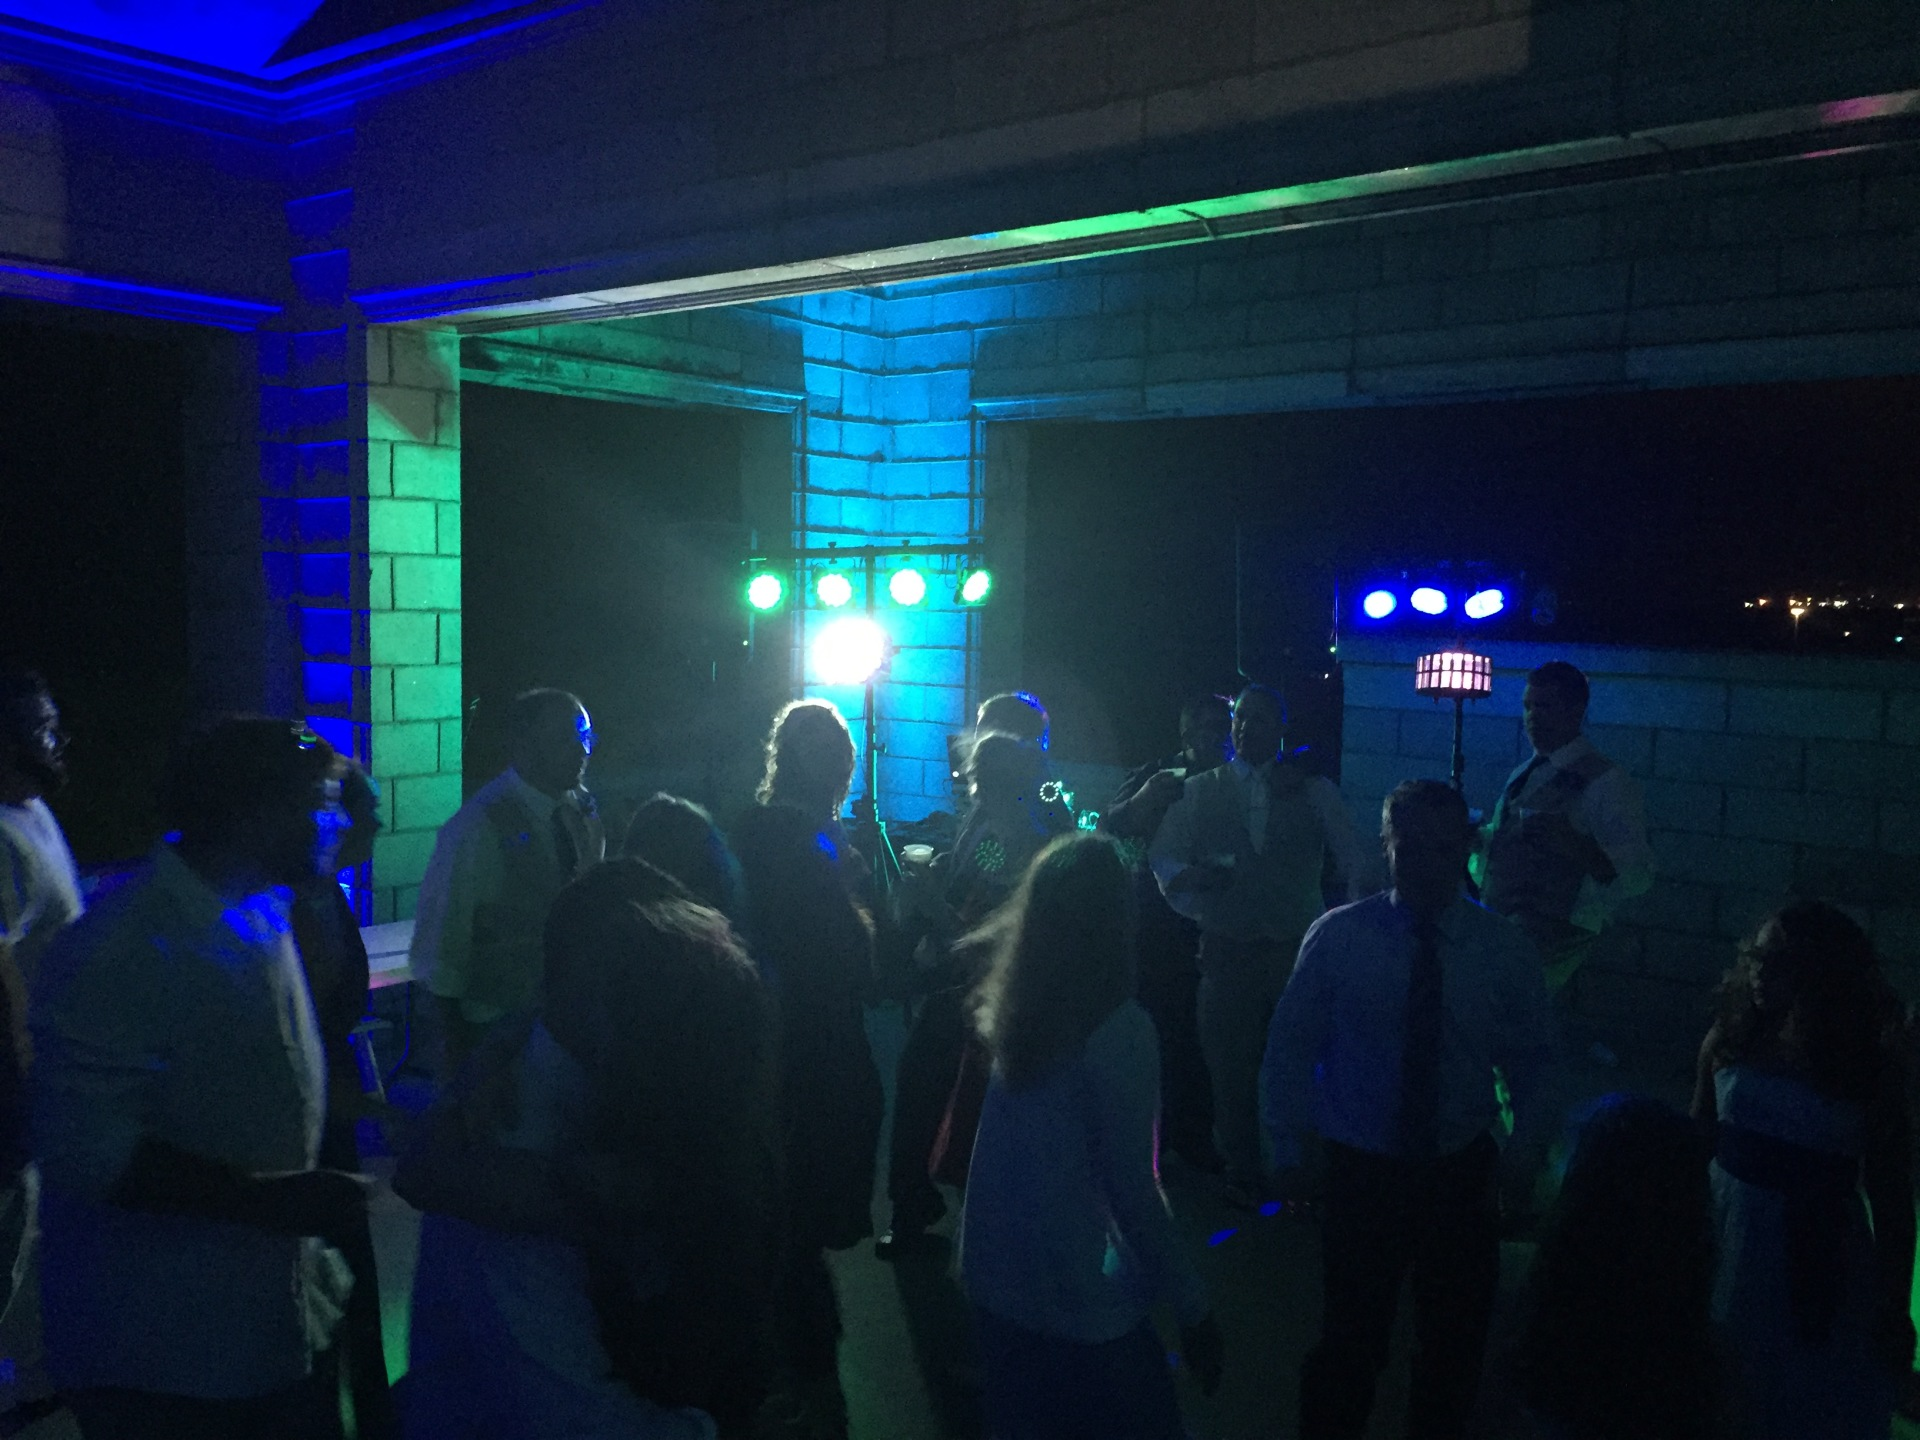 Aquatorium Gary wedding DJ Arrested Sounds Review